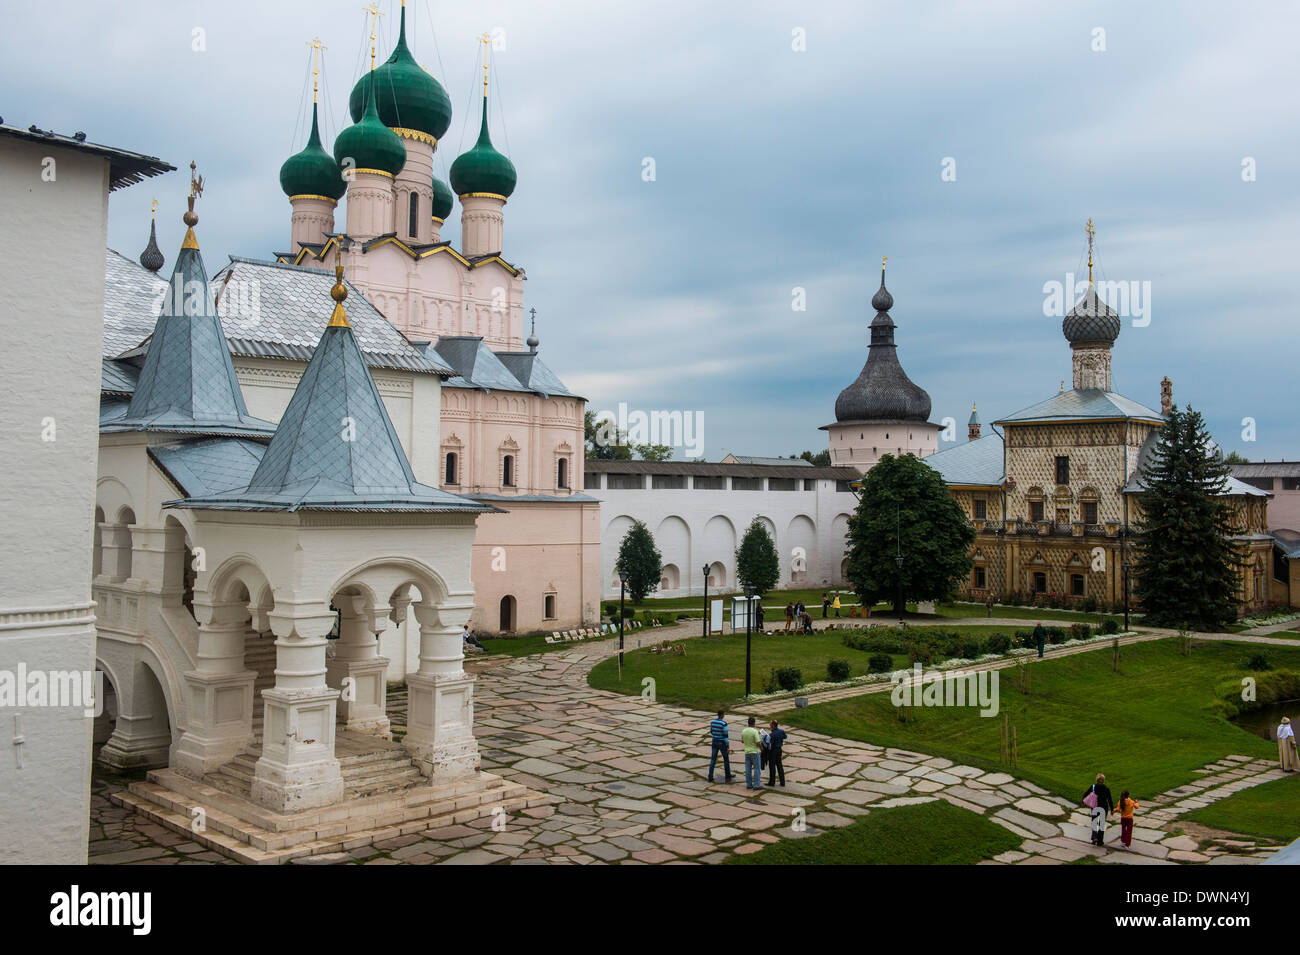 The Kremlin of Rostov Veliky, Golden Ring, Russia, Europe - Stock Image